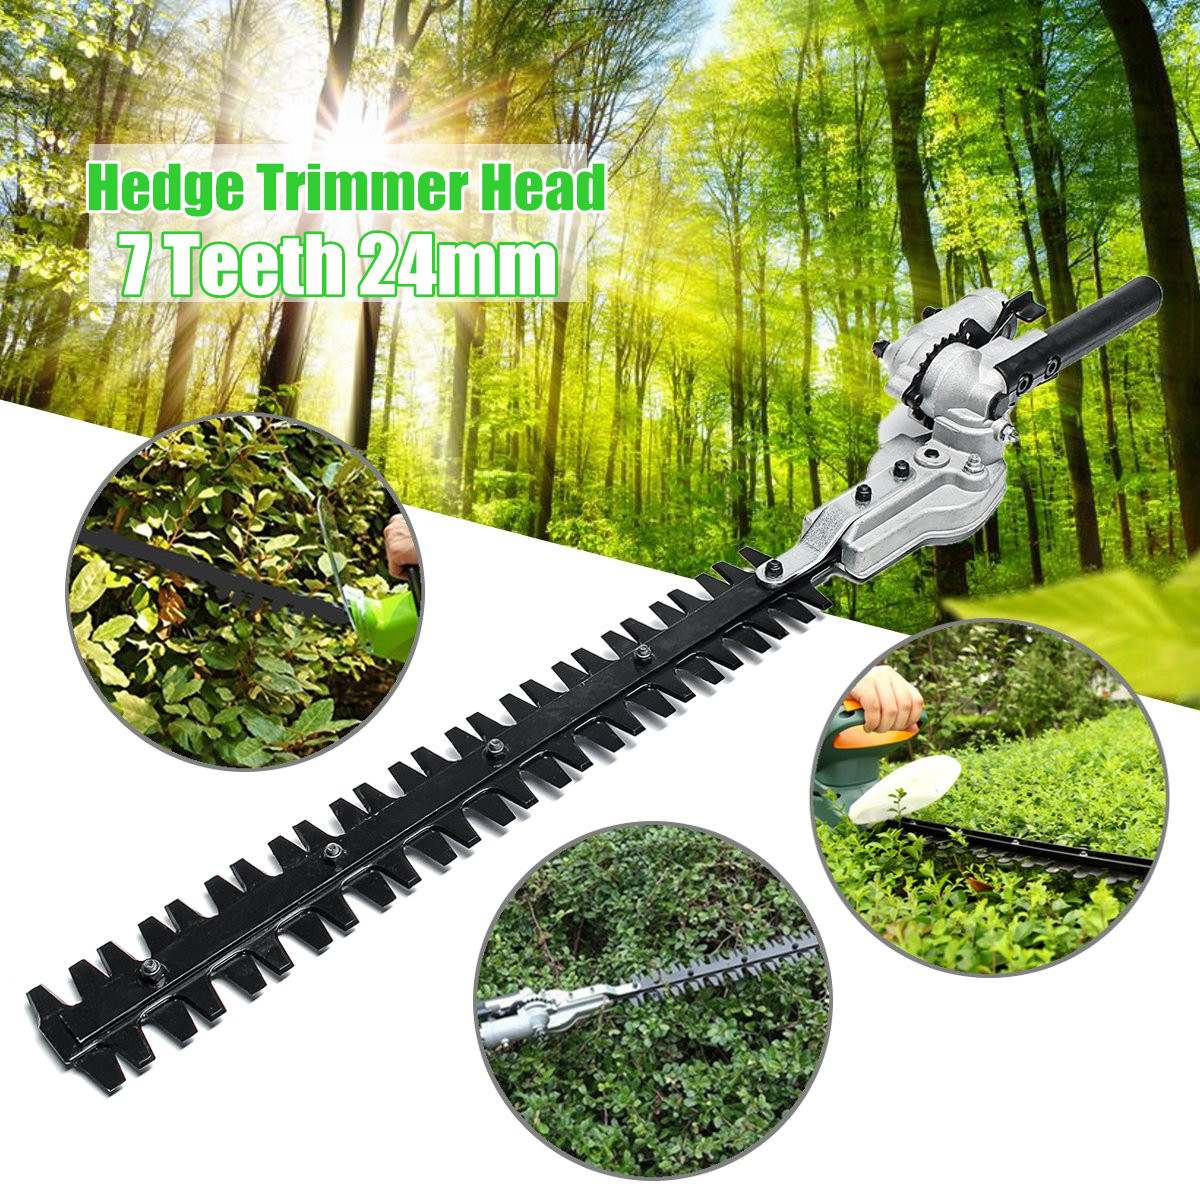 7 Teeth Gearboxs 24mm Pole Hedge Trimmer Bush Cutter Head Attachment For Trimming Hedges Chainsaw Garden Power Tools|Power Tool Accessories| |  - title=